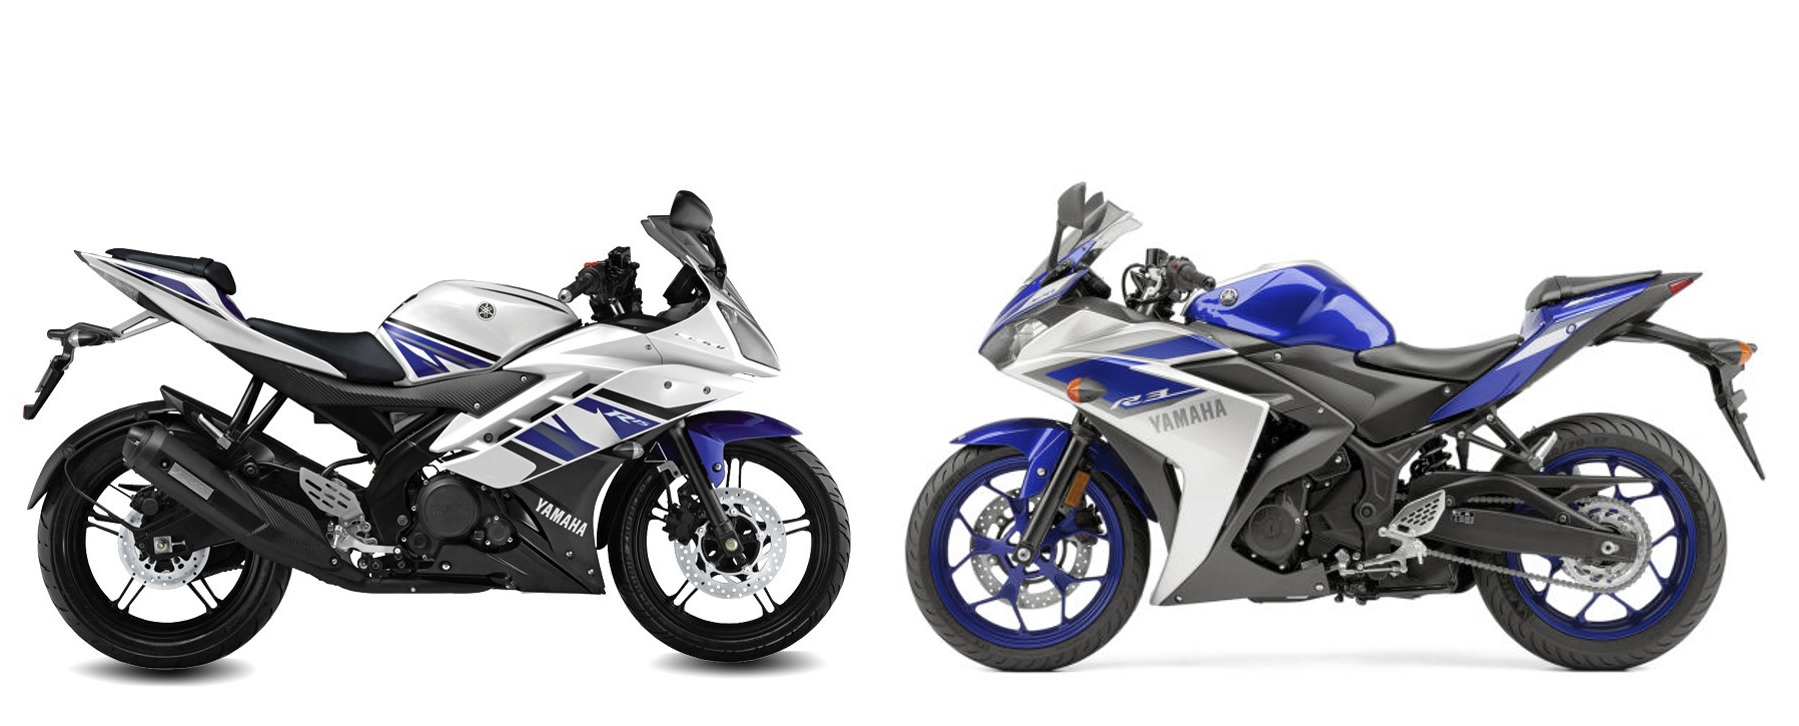 R3 VS R15 - Will the R3 set a performance benchmark like the R15